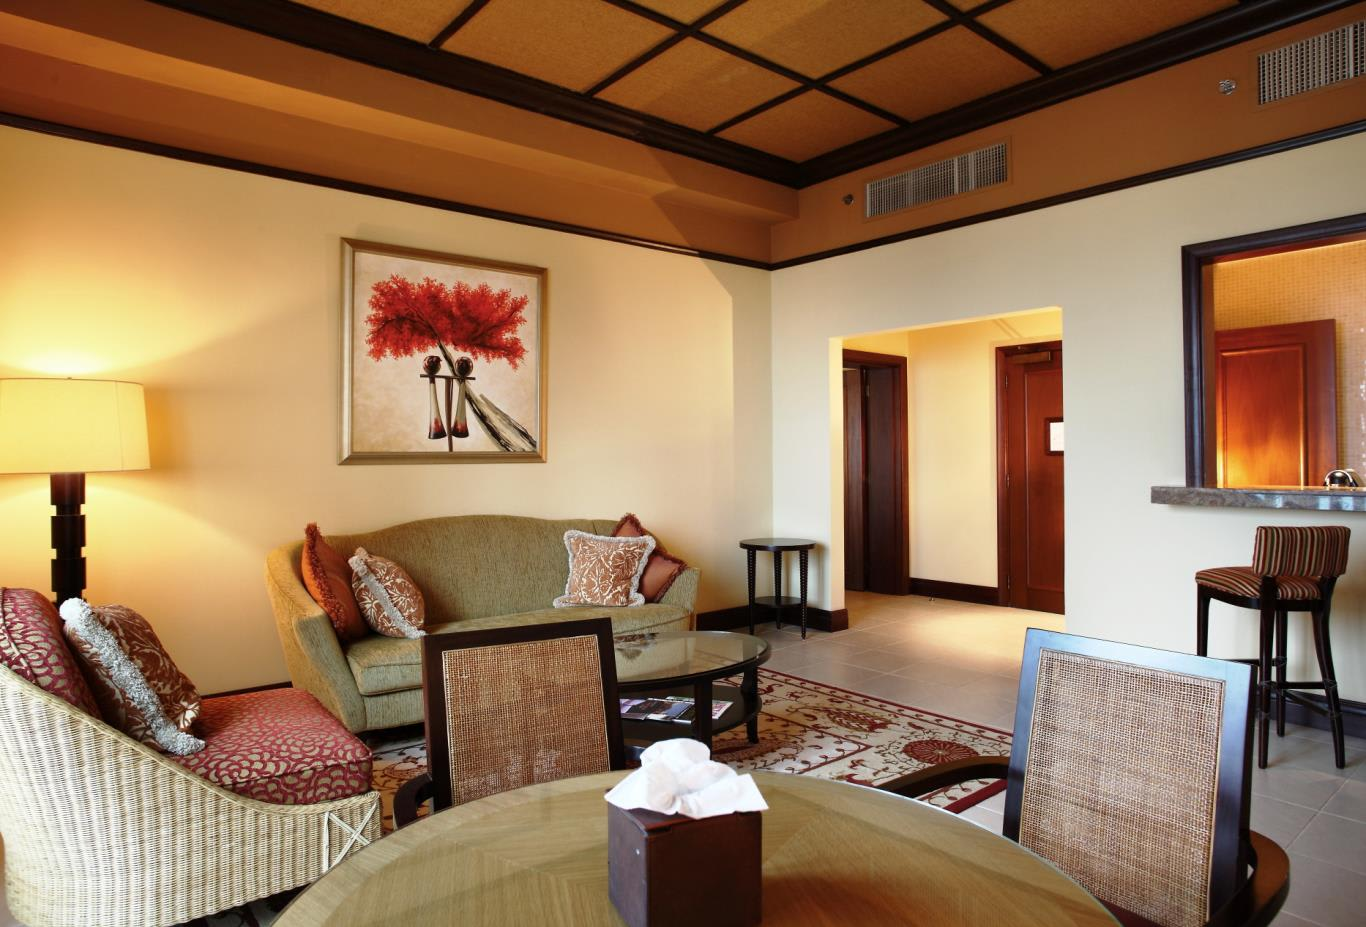 Anantara Suite living room and kitchen